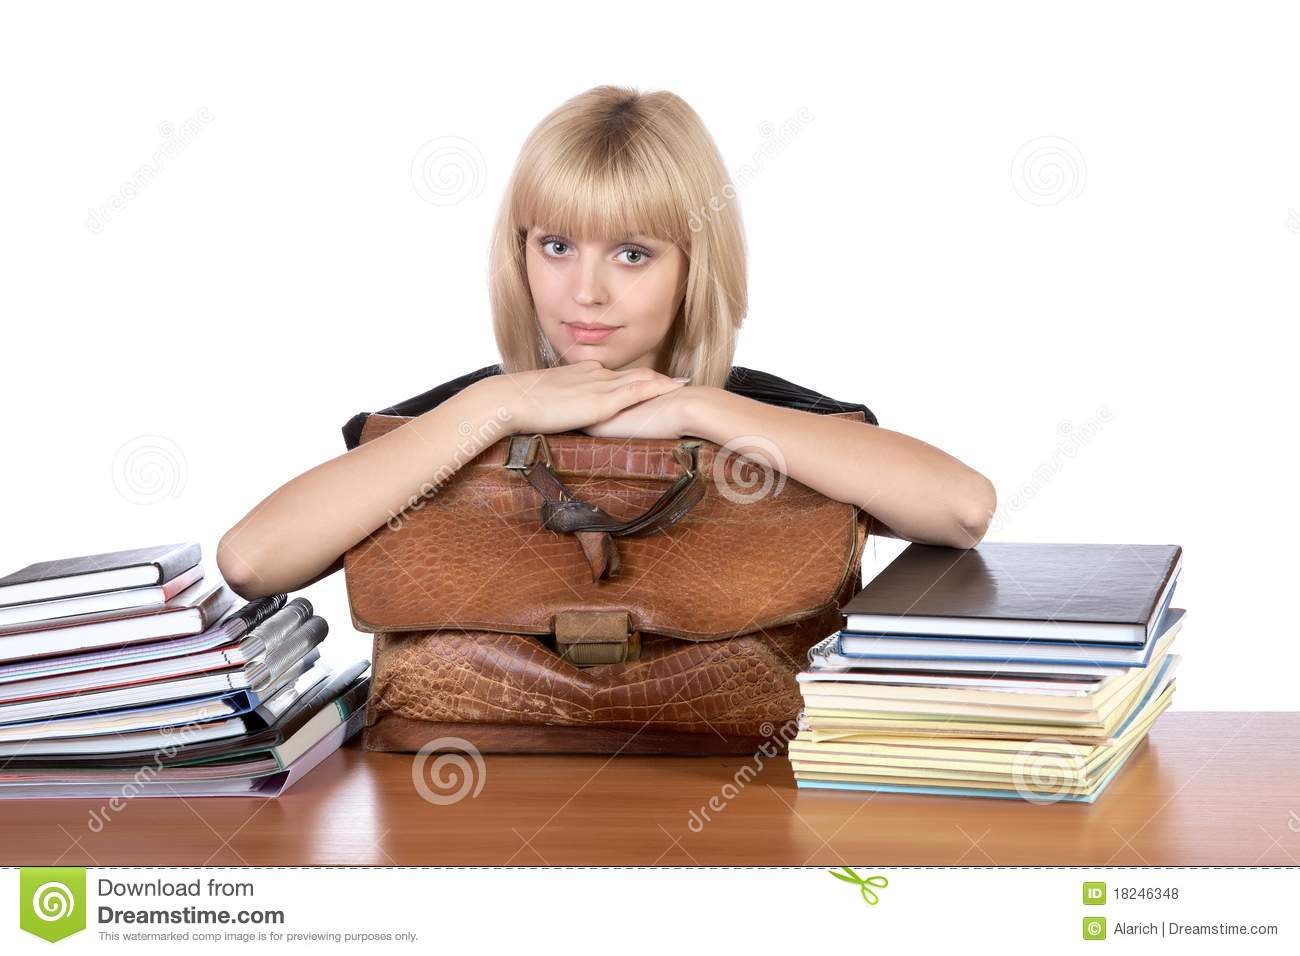 The girl with an old briefcase in hands